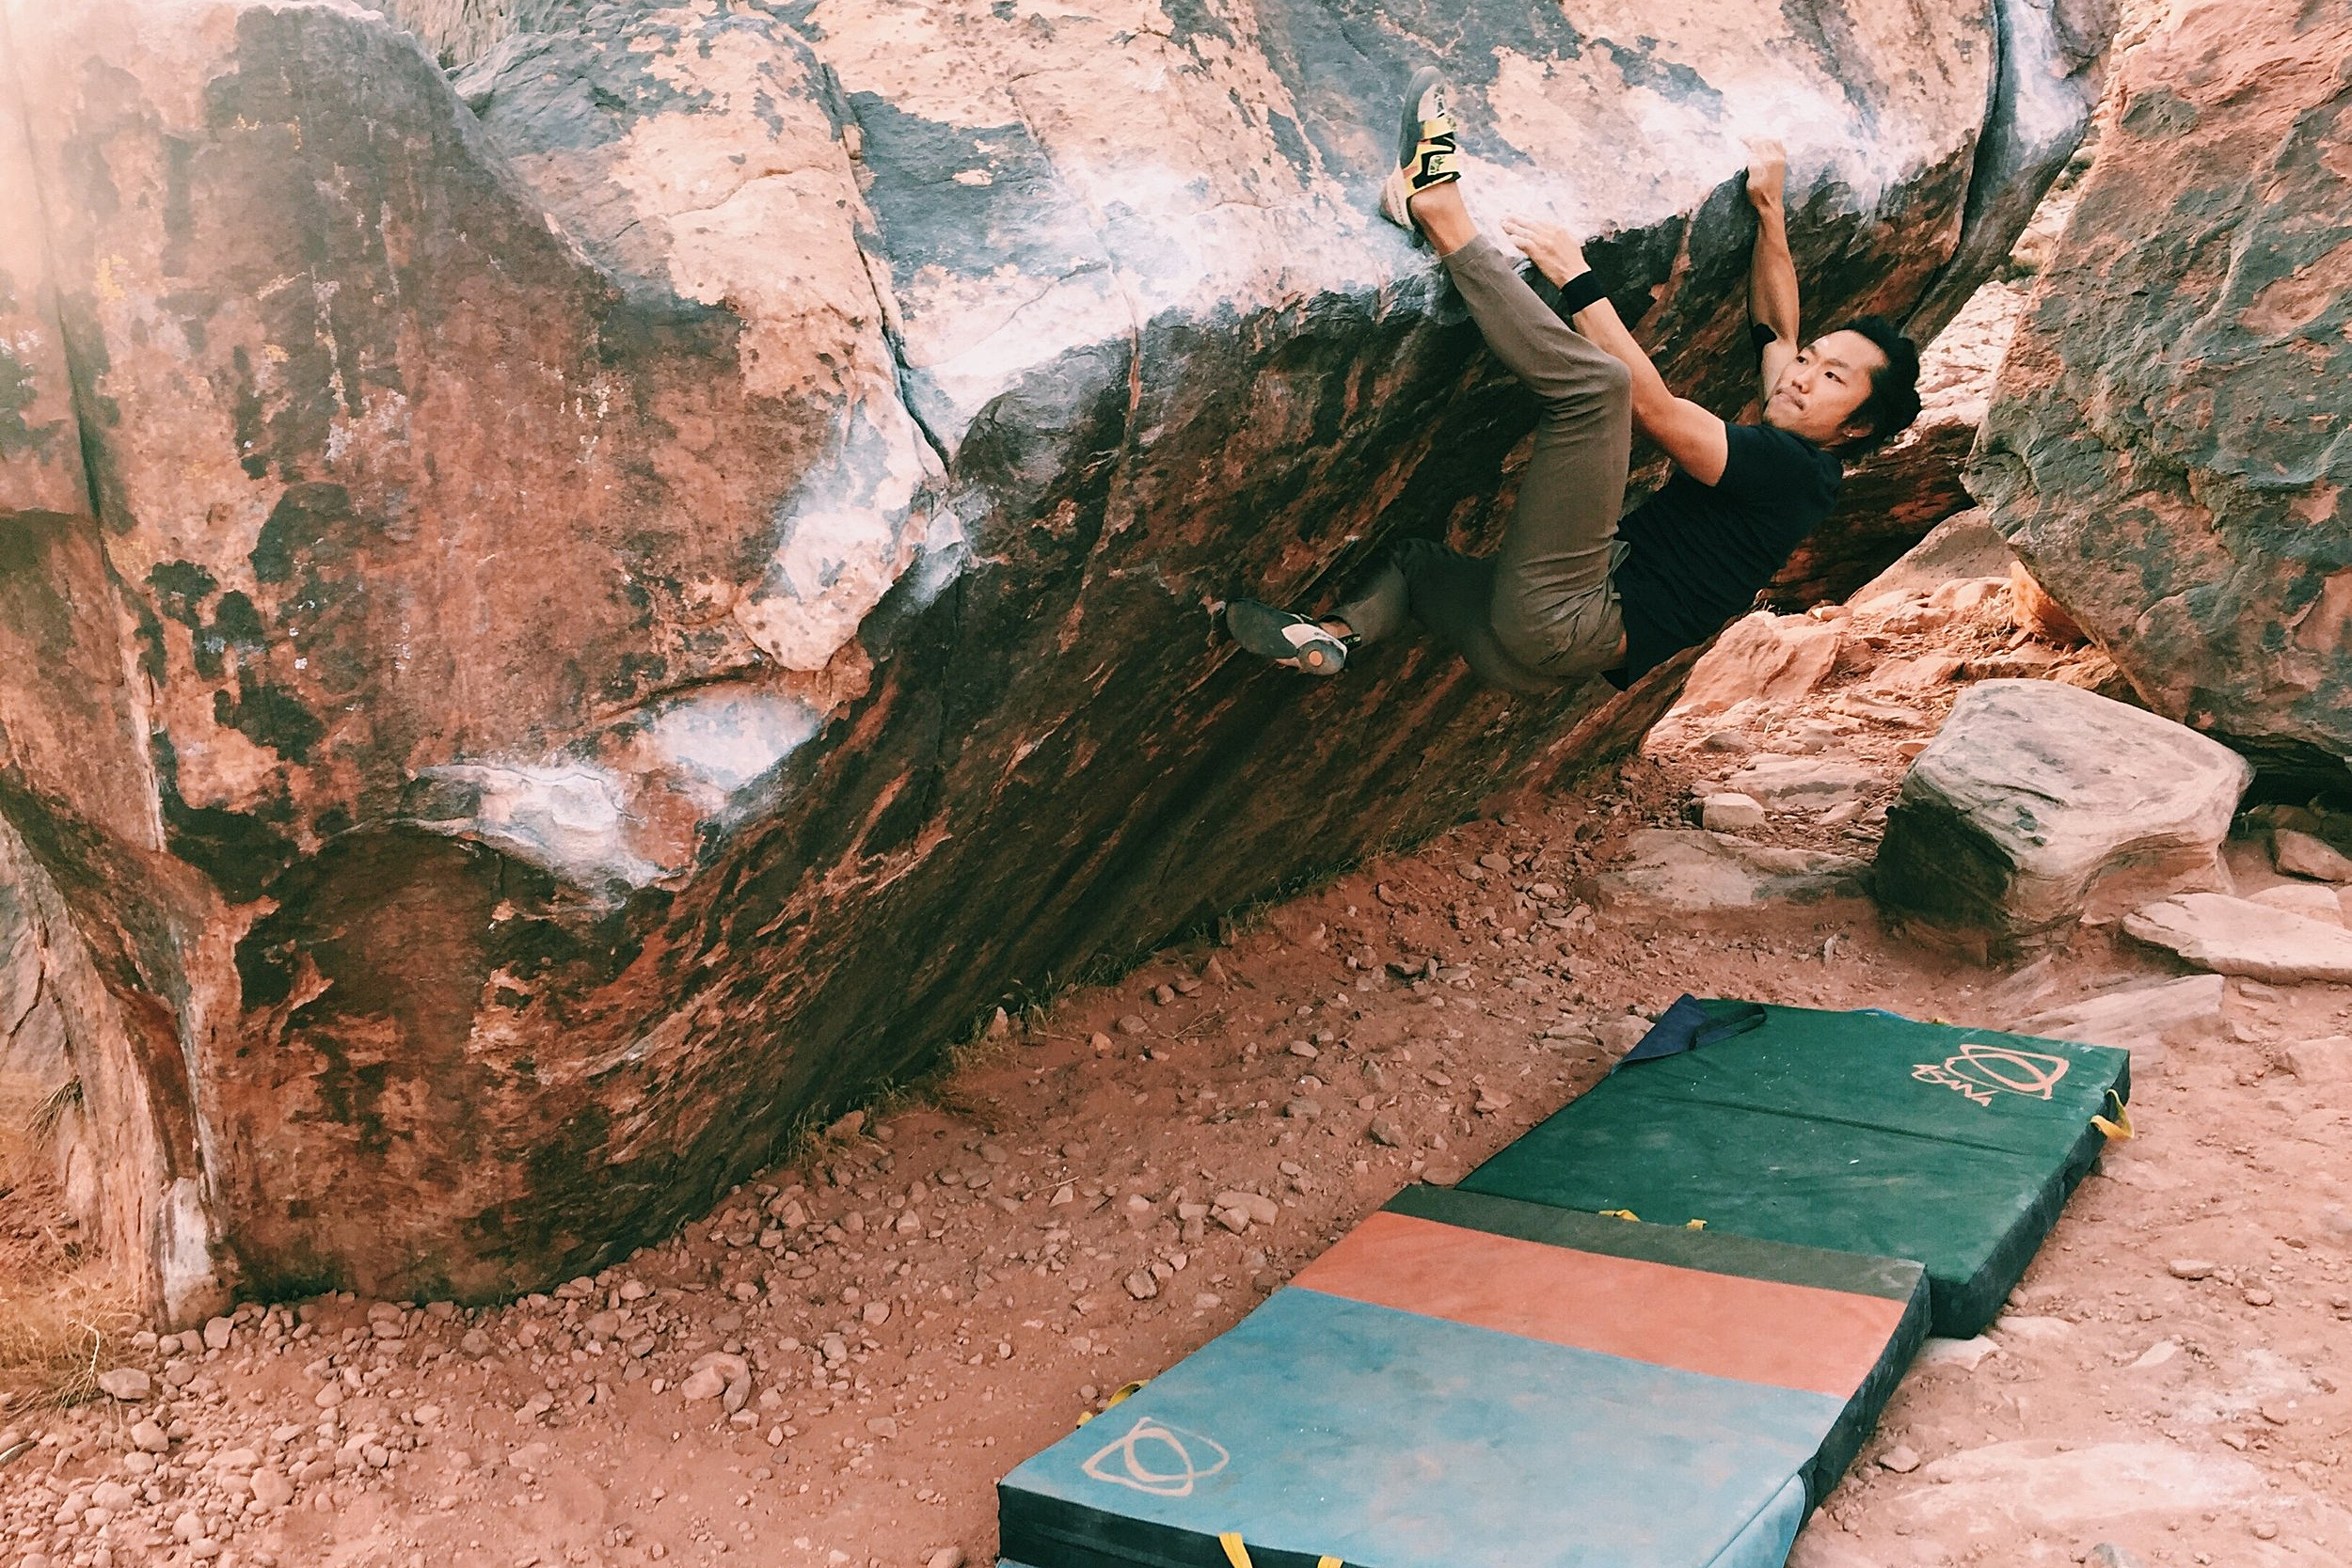 Thomas Moon in Red Rocks. Photo Credit Evelyn Jong